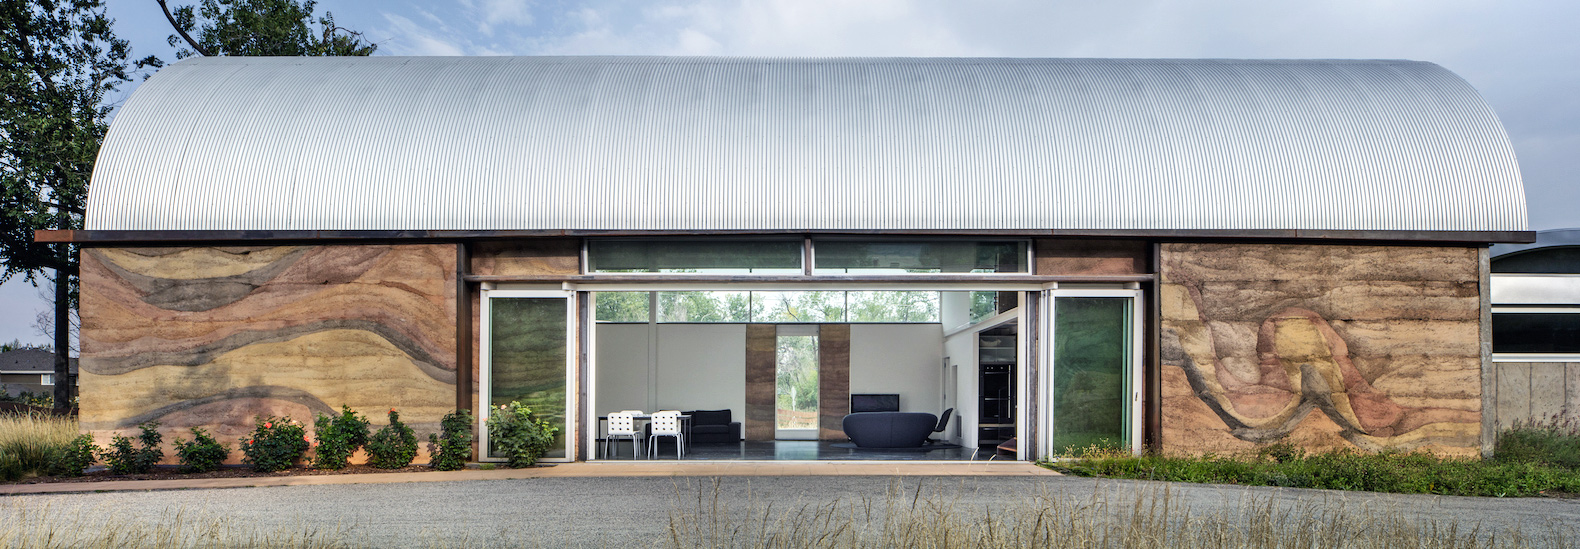 Minimalist Artist Retreat With Rammed Earth Walls Draws Upon 100% Renewable  Resources